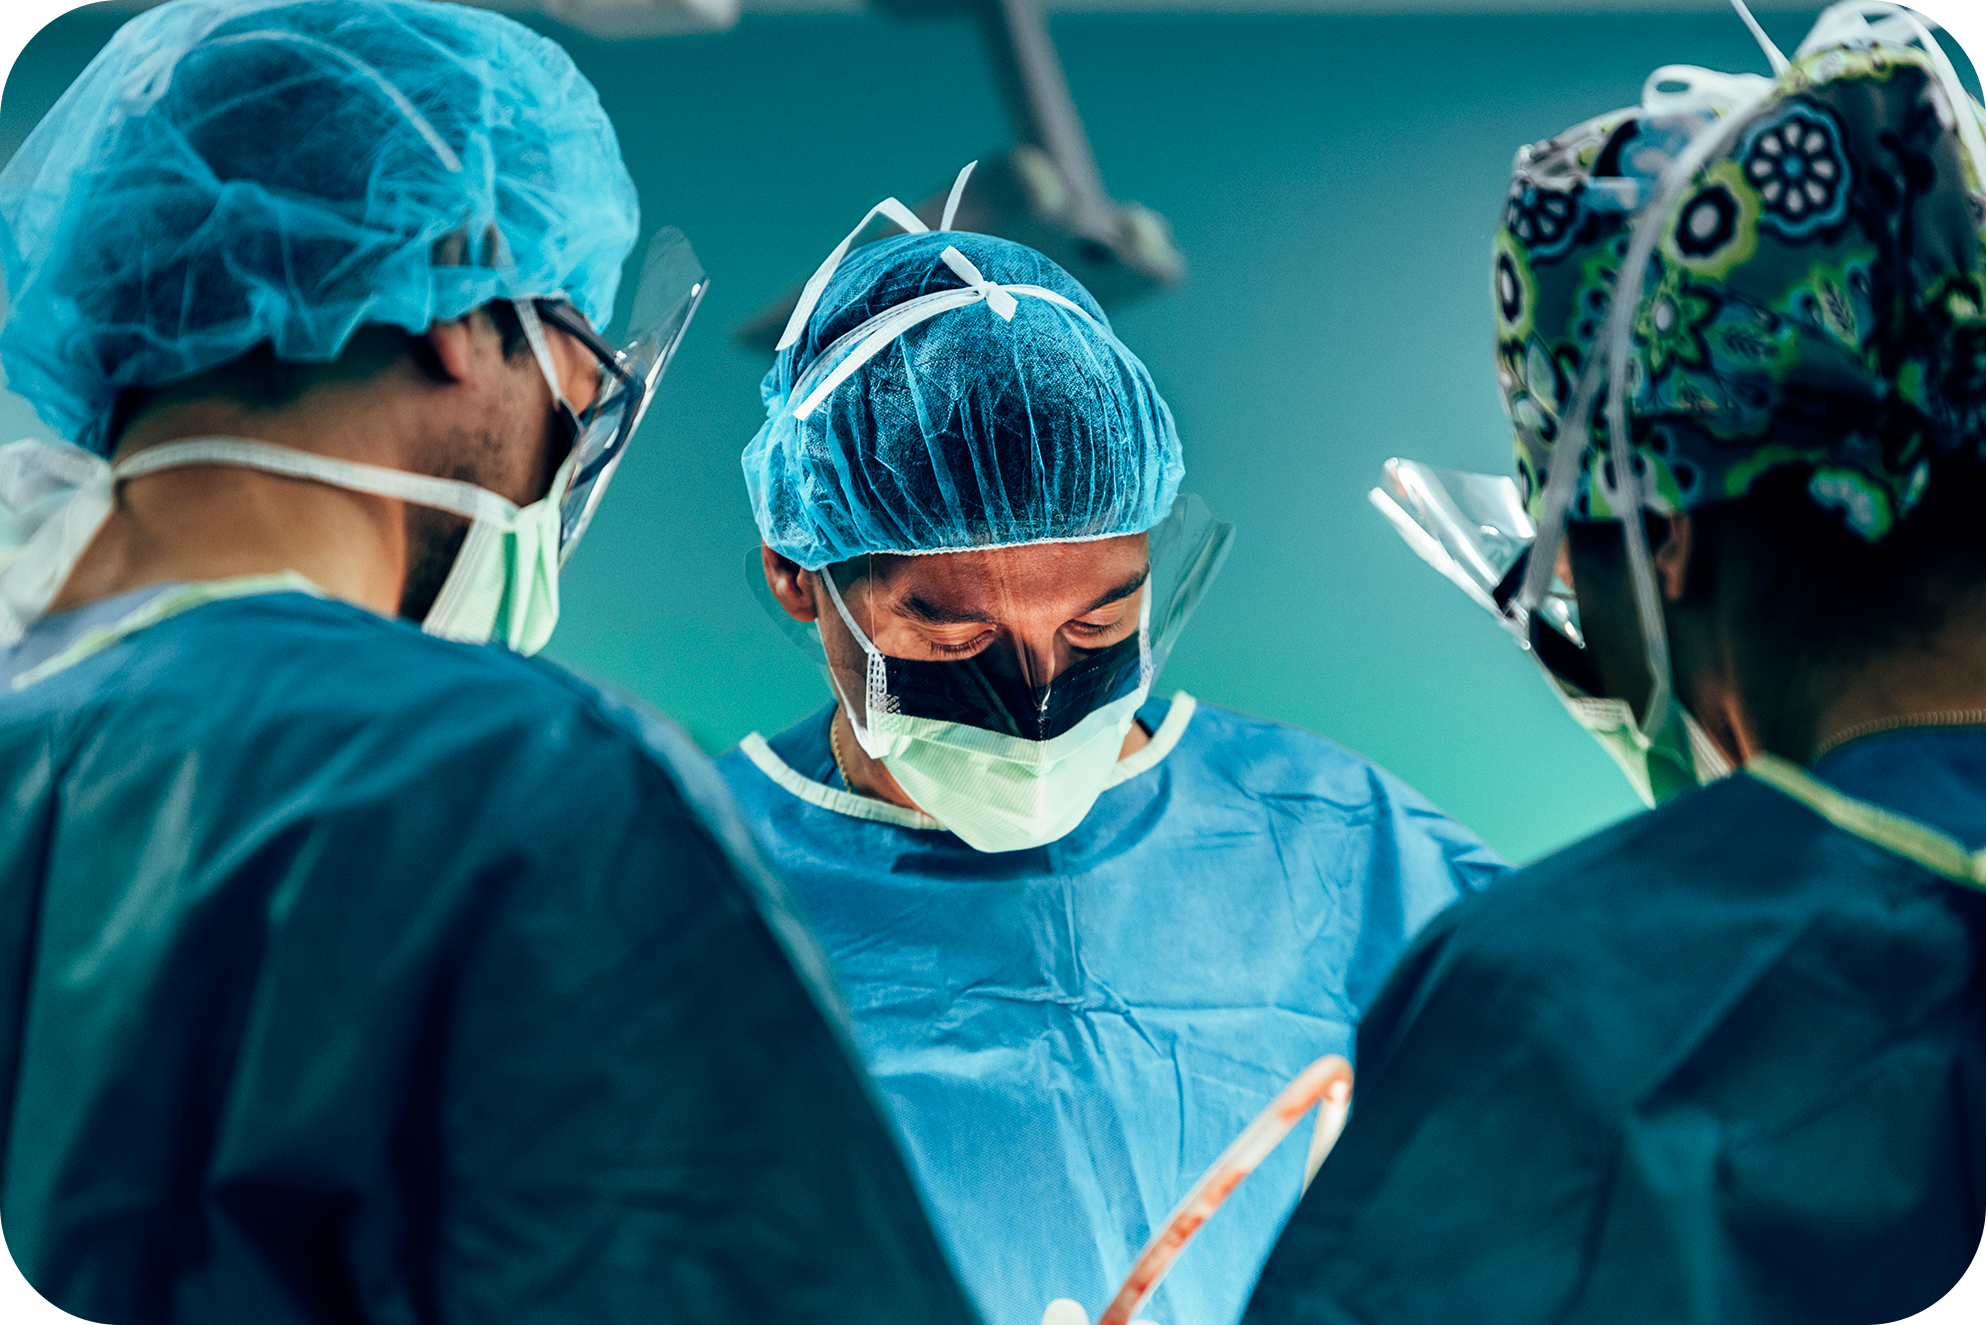 surgical outcomes vary